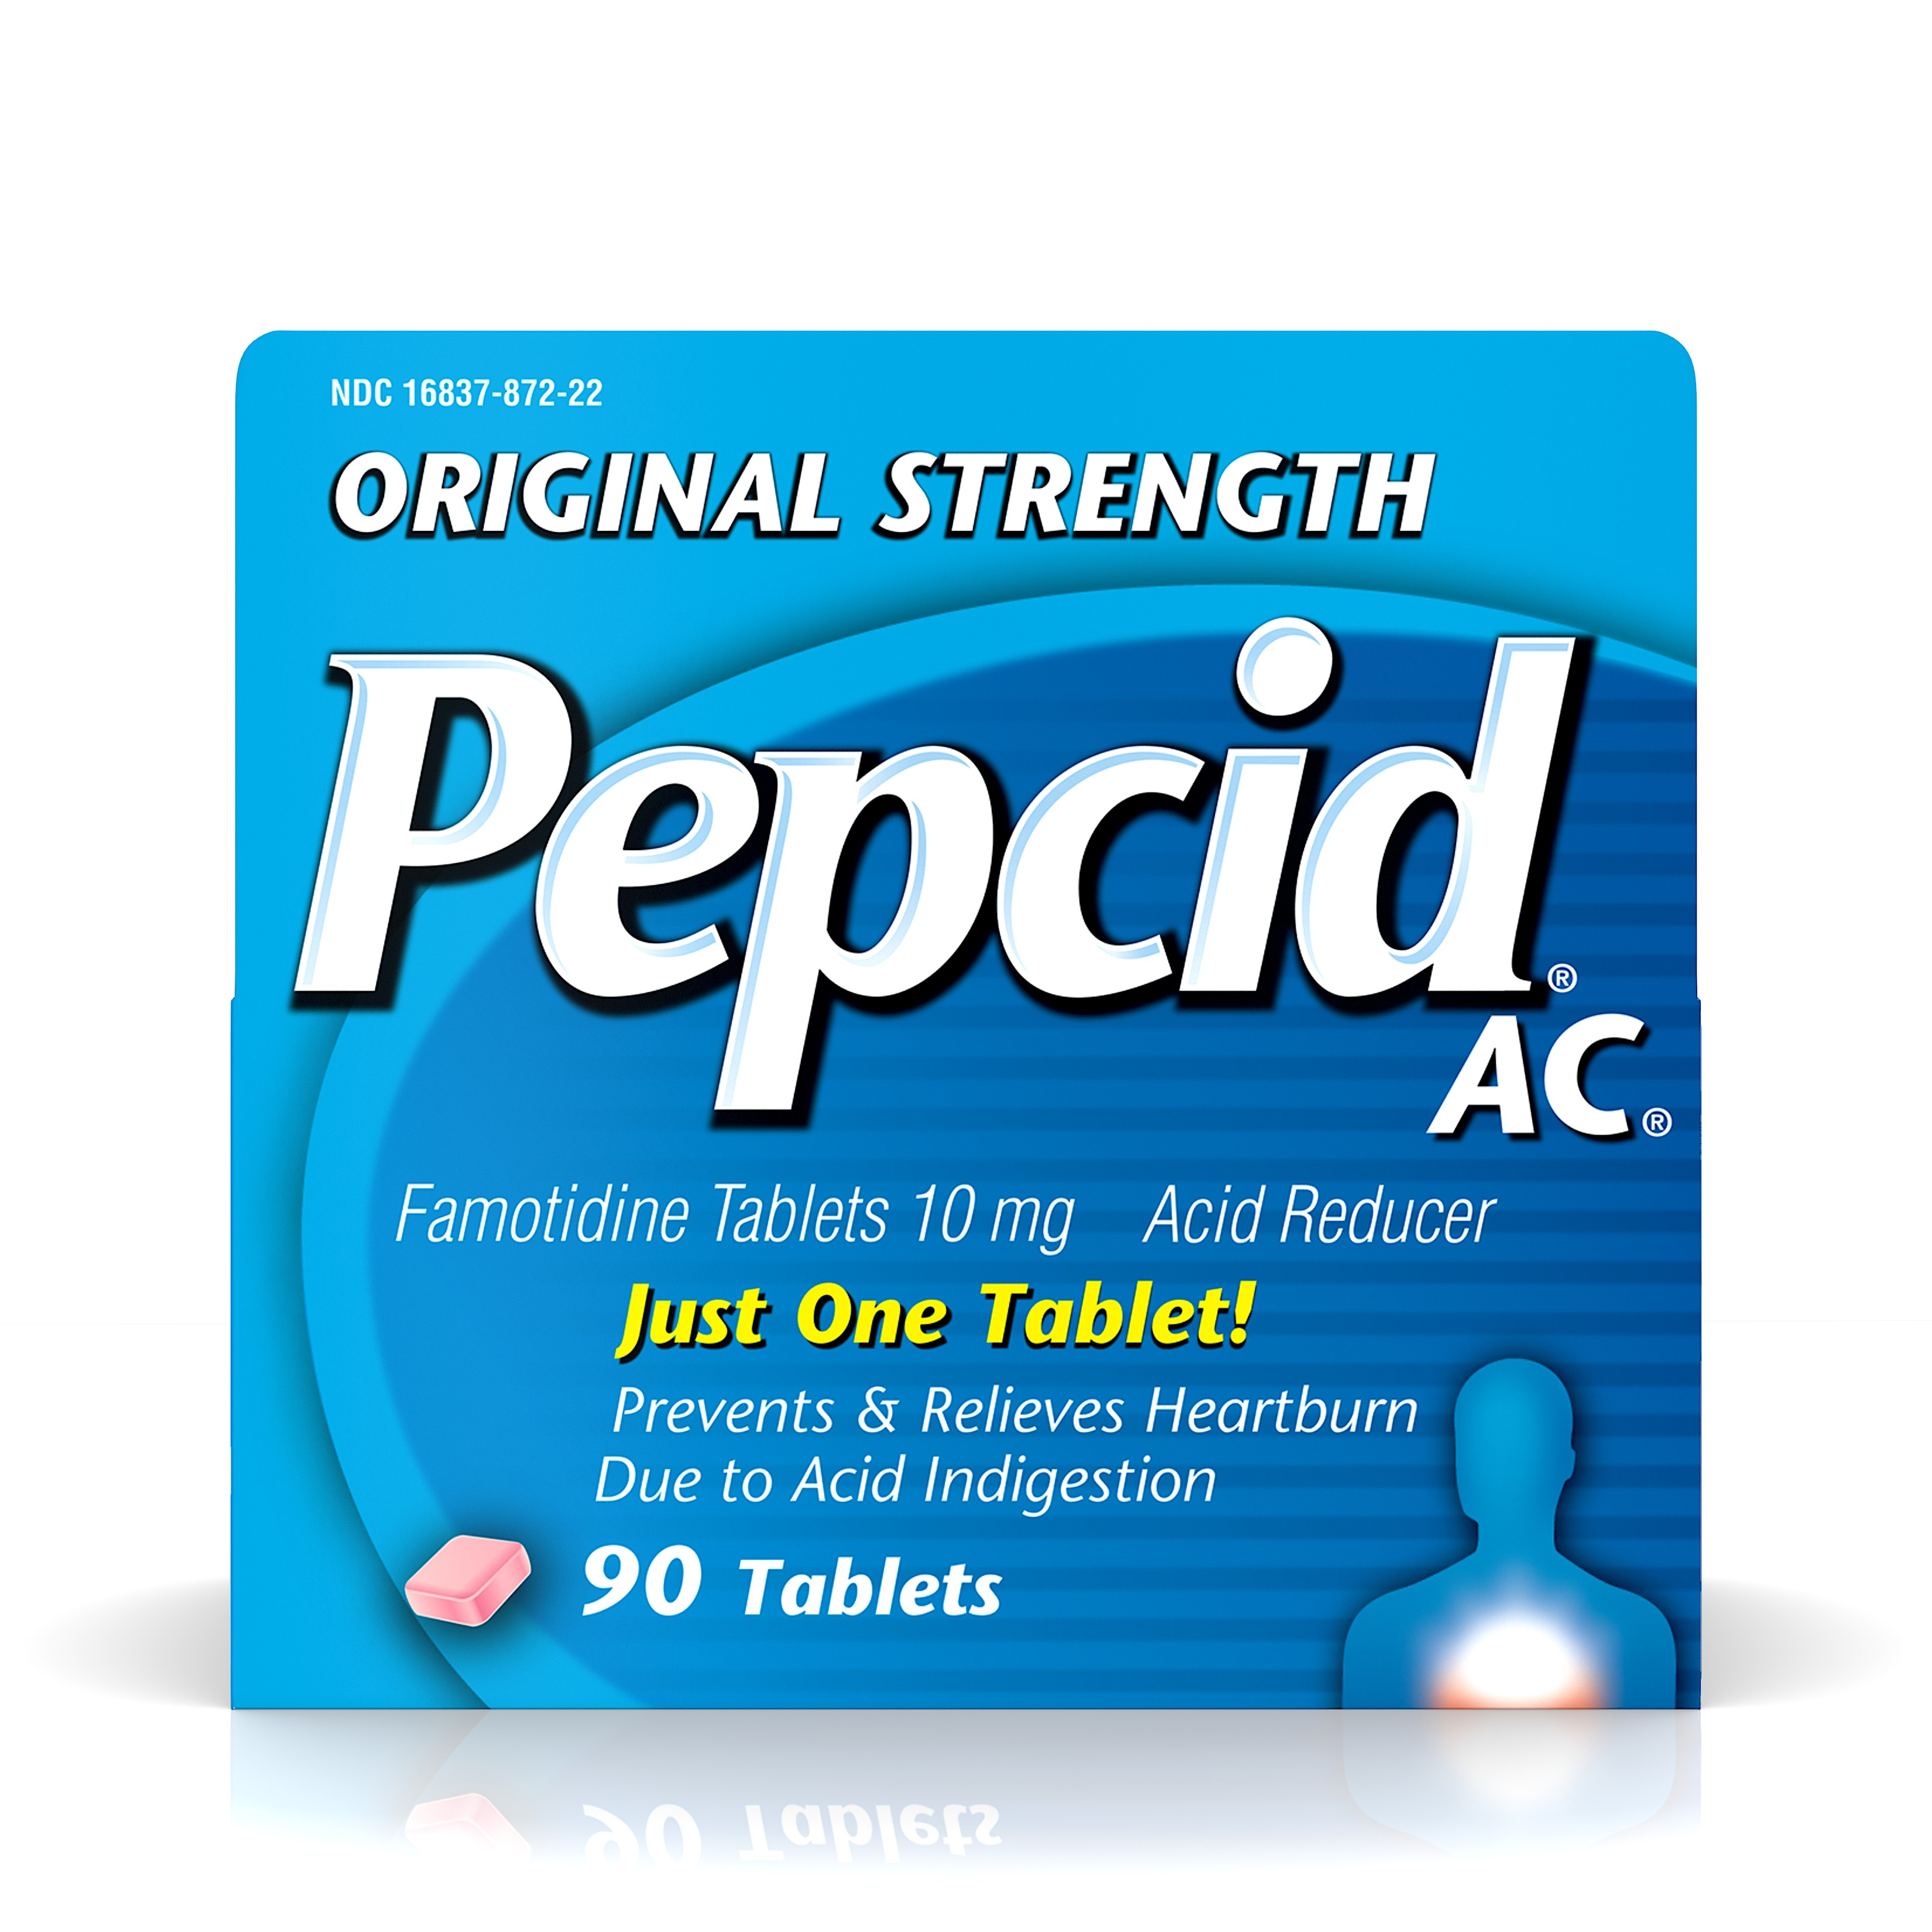 Original Strength Pepcid AC All-Day Heartburn Indigestion Relief Tablets, 90 count